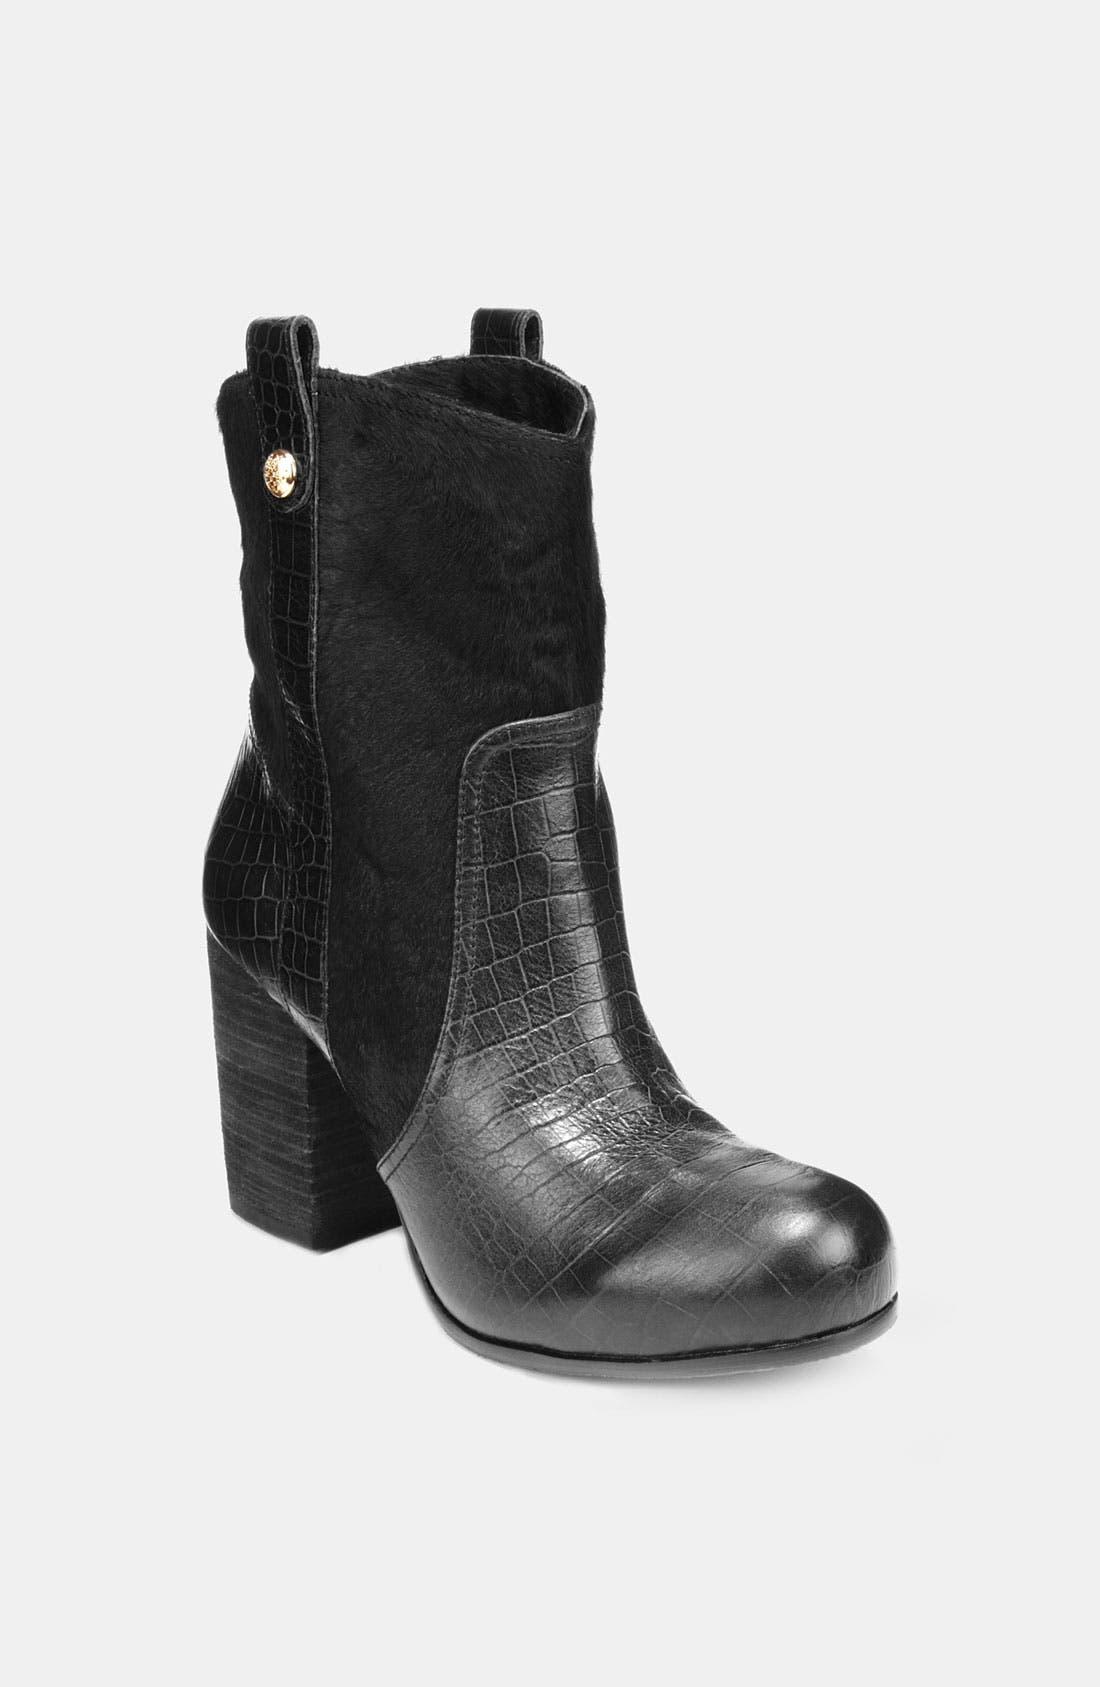 Main Image - Vince Camuto 'Bennie' Boot